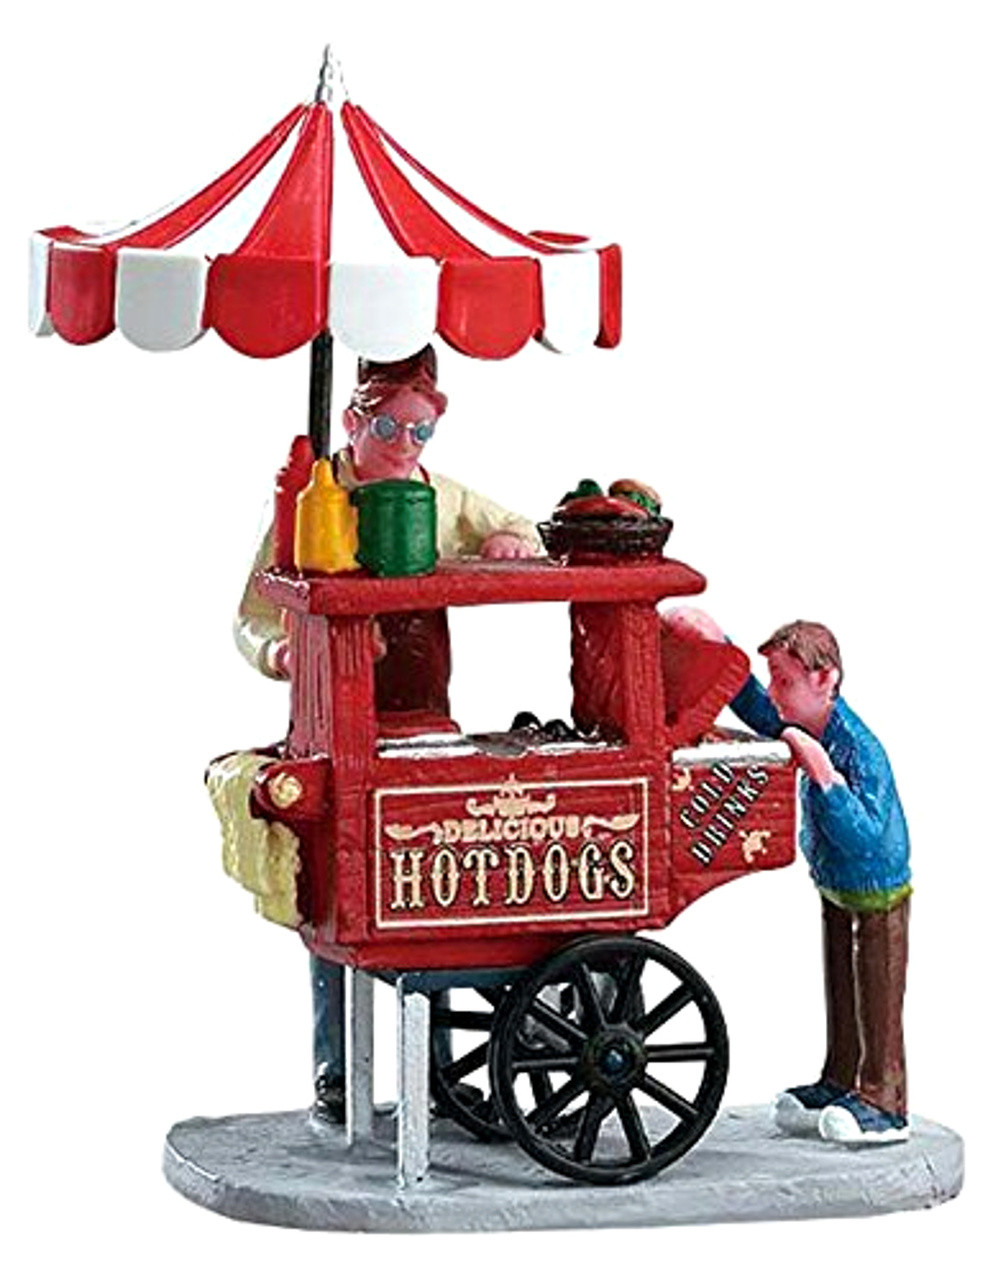 Christmas Village Accessories.Lemax 12932 Hot Dog Cart Figurine Christmas Village Figures Accessories Bcg